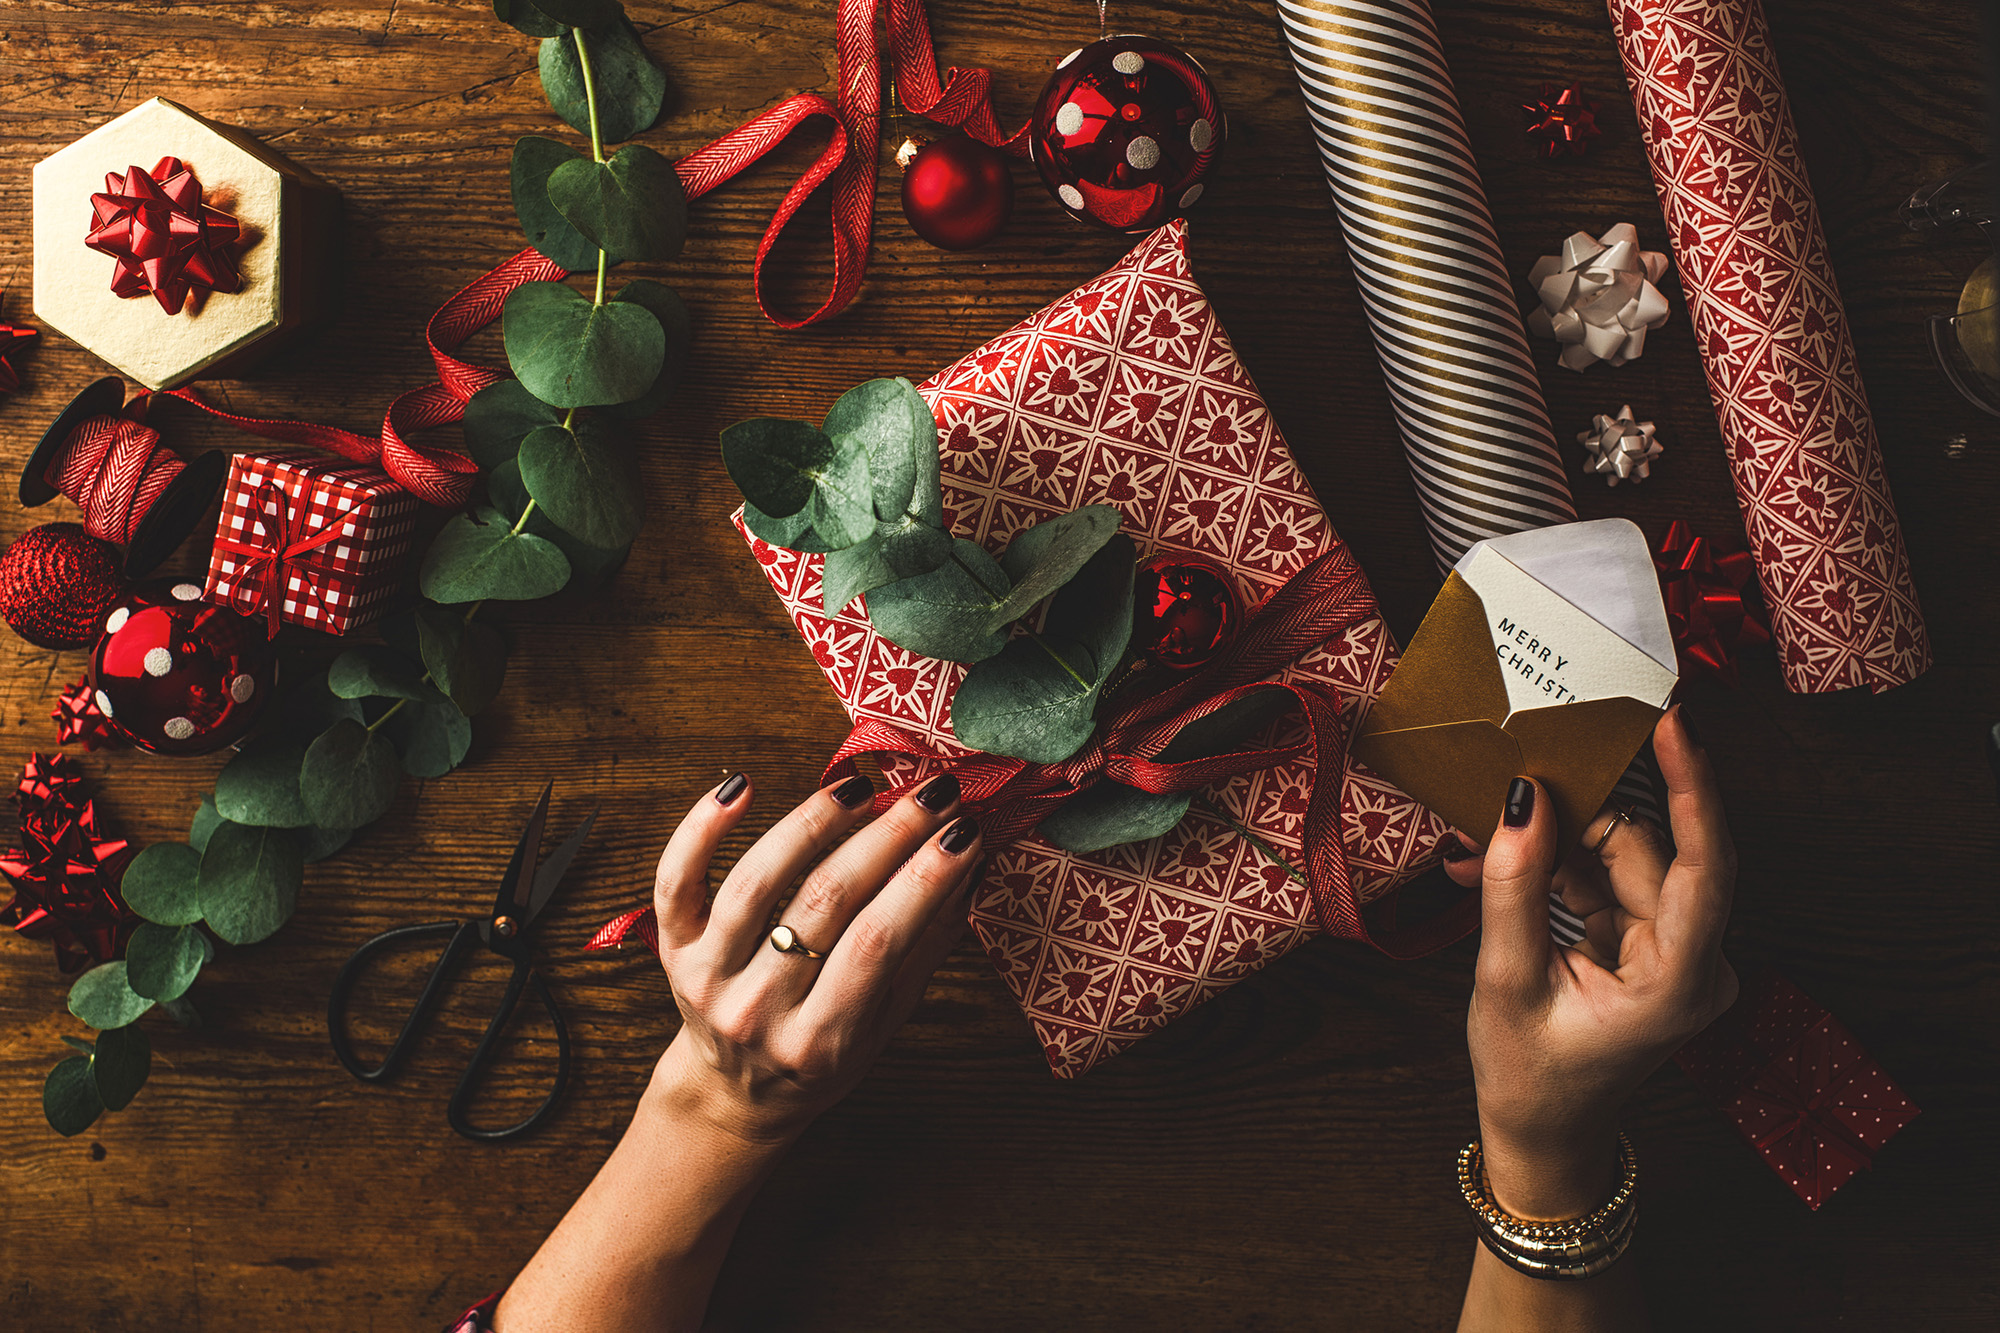 How much do you really need to spend on that holiday gift how much do you really need to spend on that holiday gift personal finance us news negle Choice Image